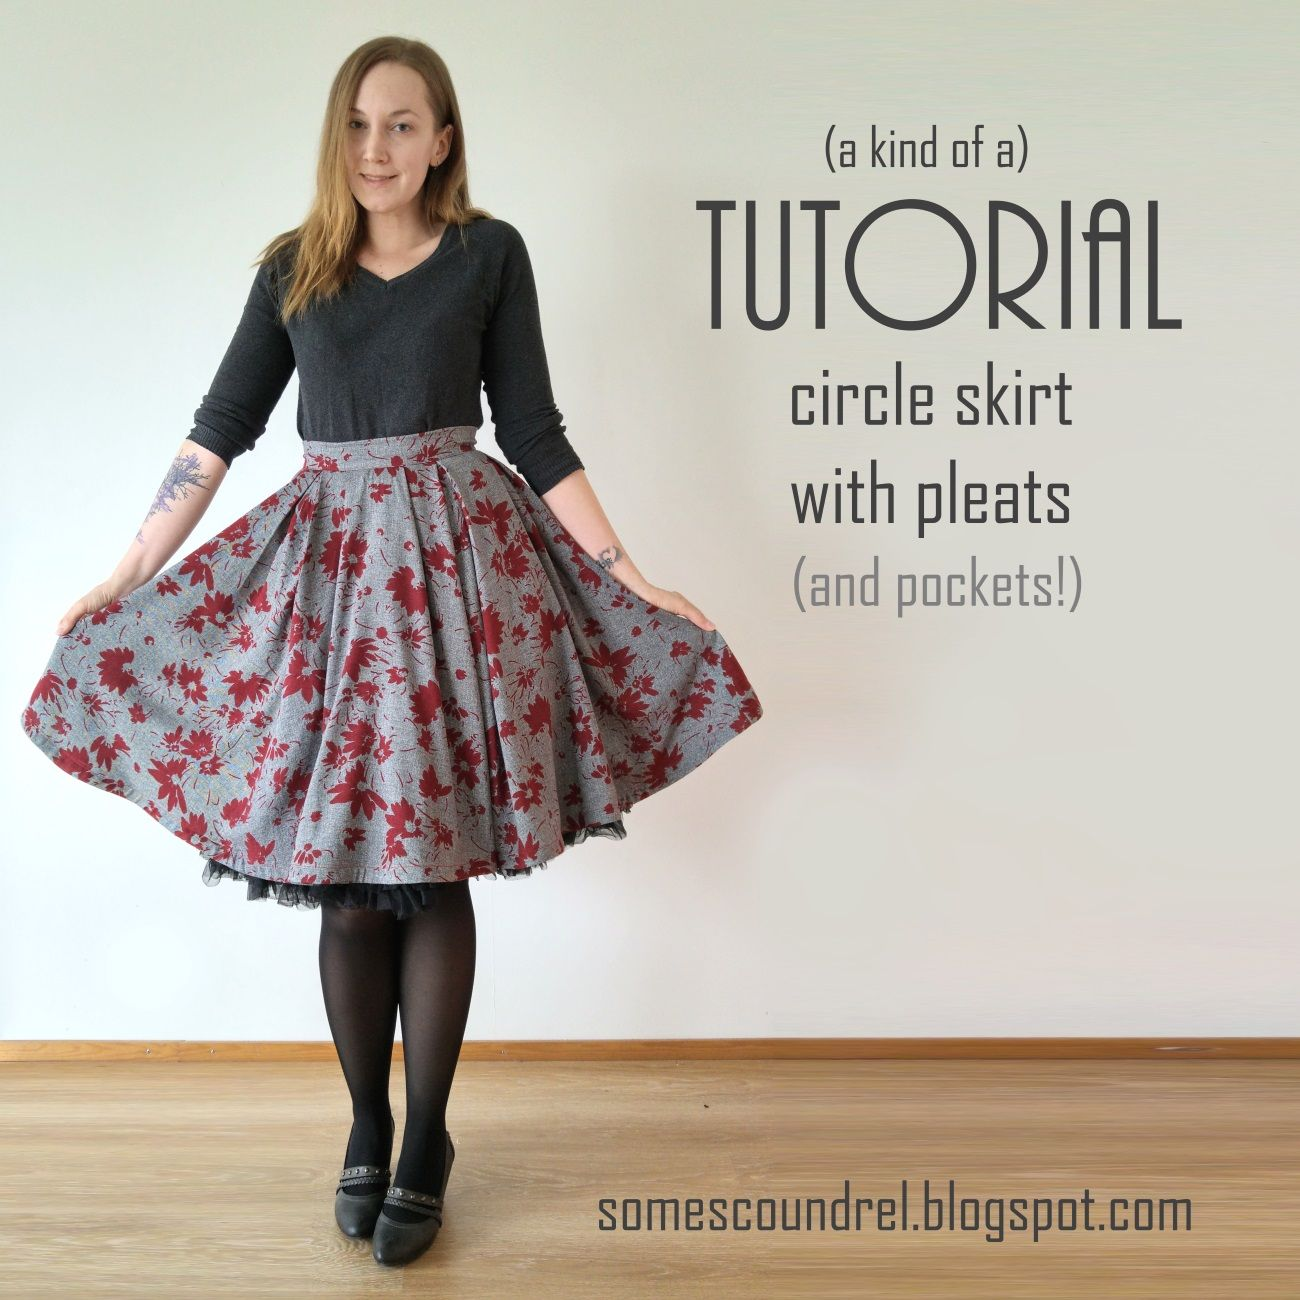 A circle skirt that's also pleated (a kind of a tutorial)